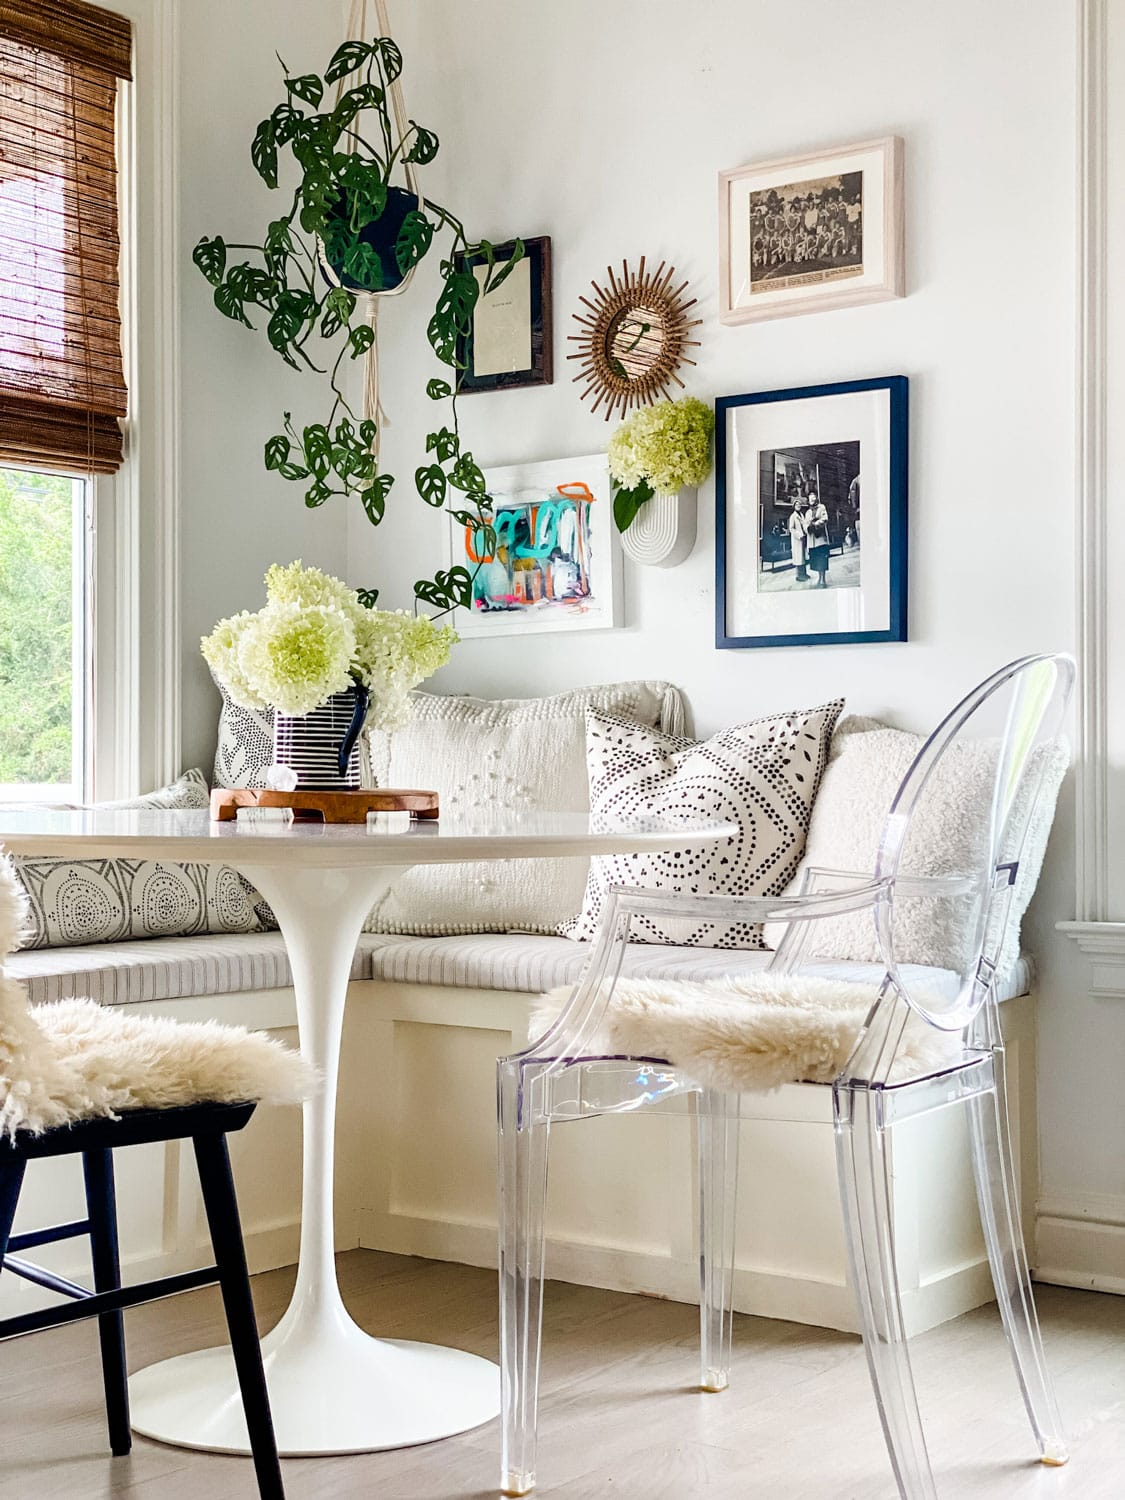 Custom Banquette Cushions from Patio Lane